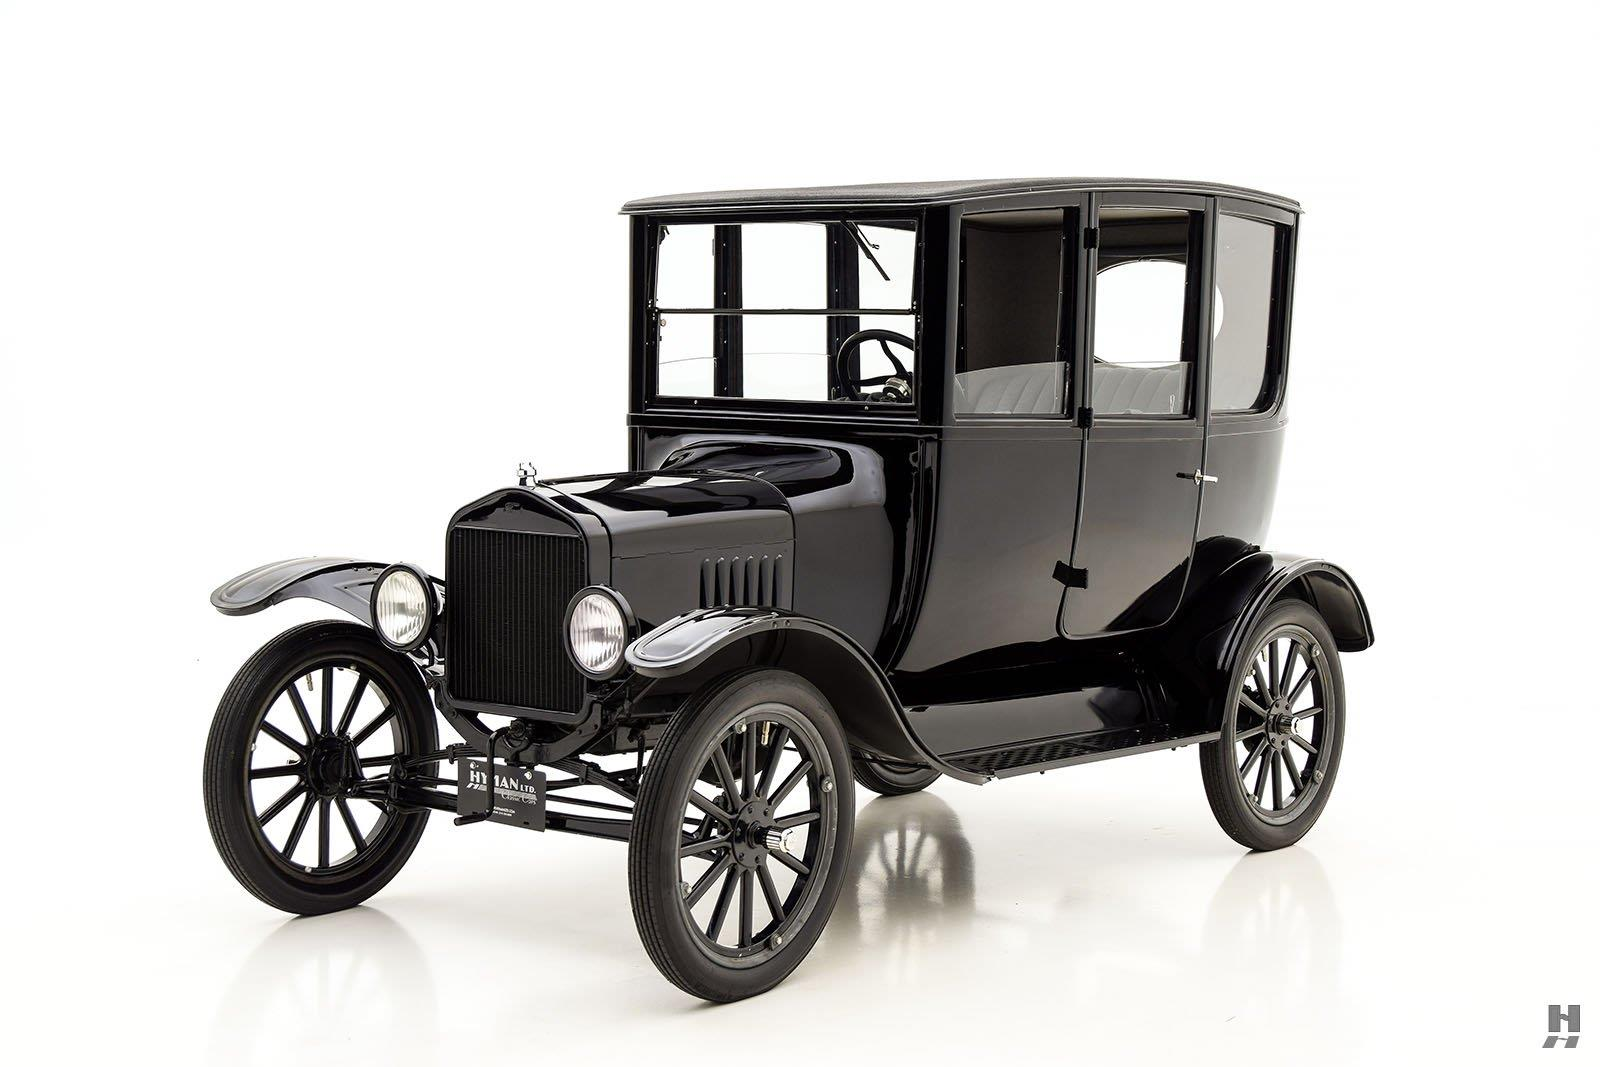 On september 27 1908 the first ford model t left the factory in detroit michigan to describe the event as a significant moment in american automotive